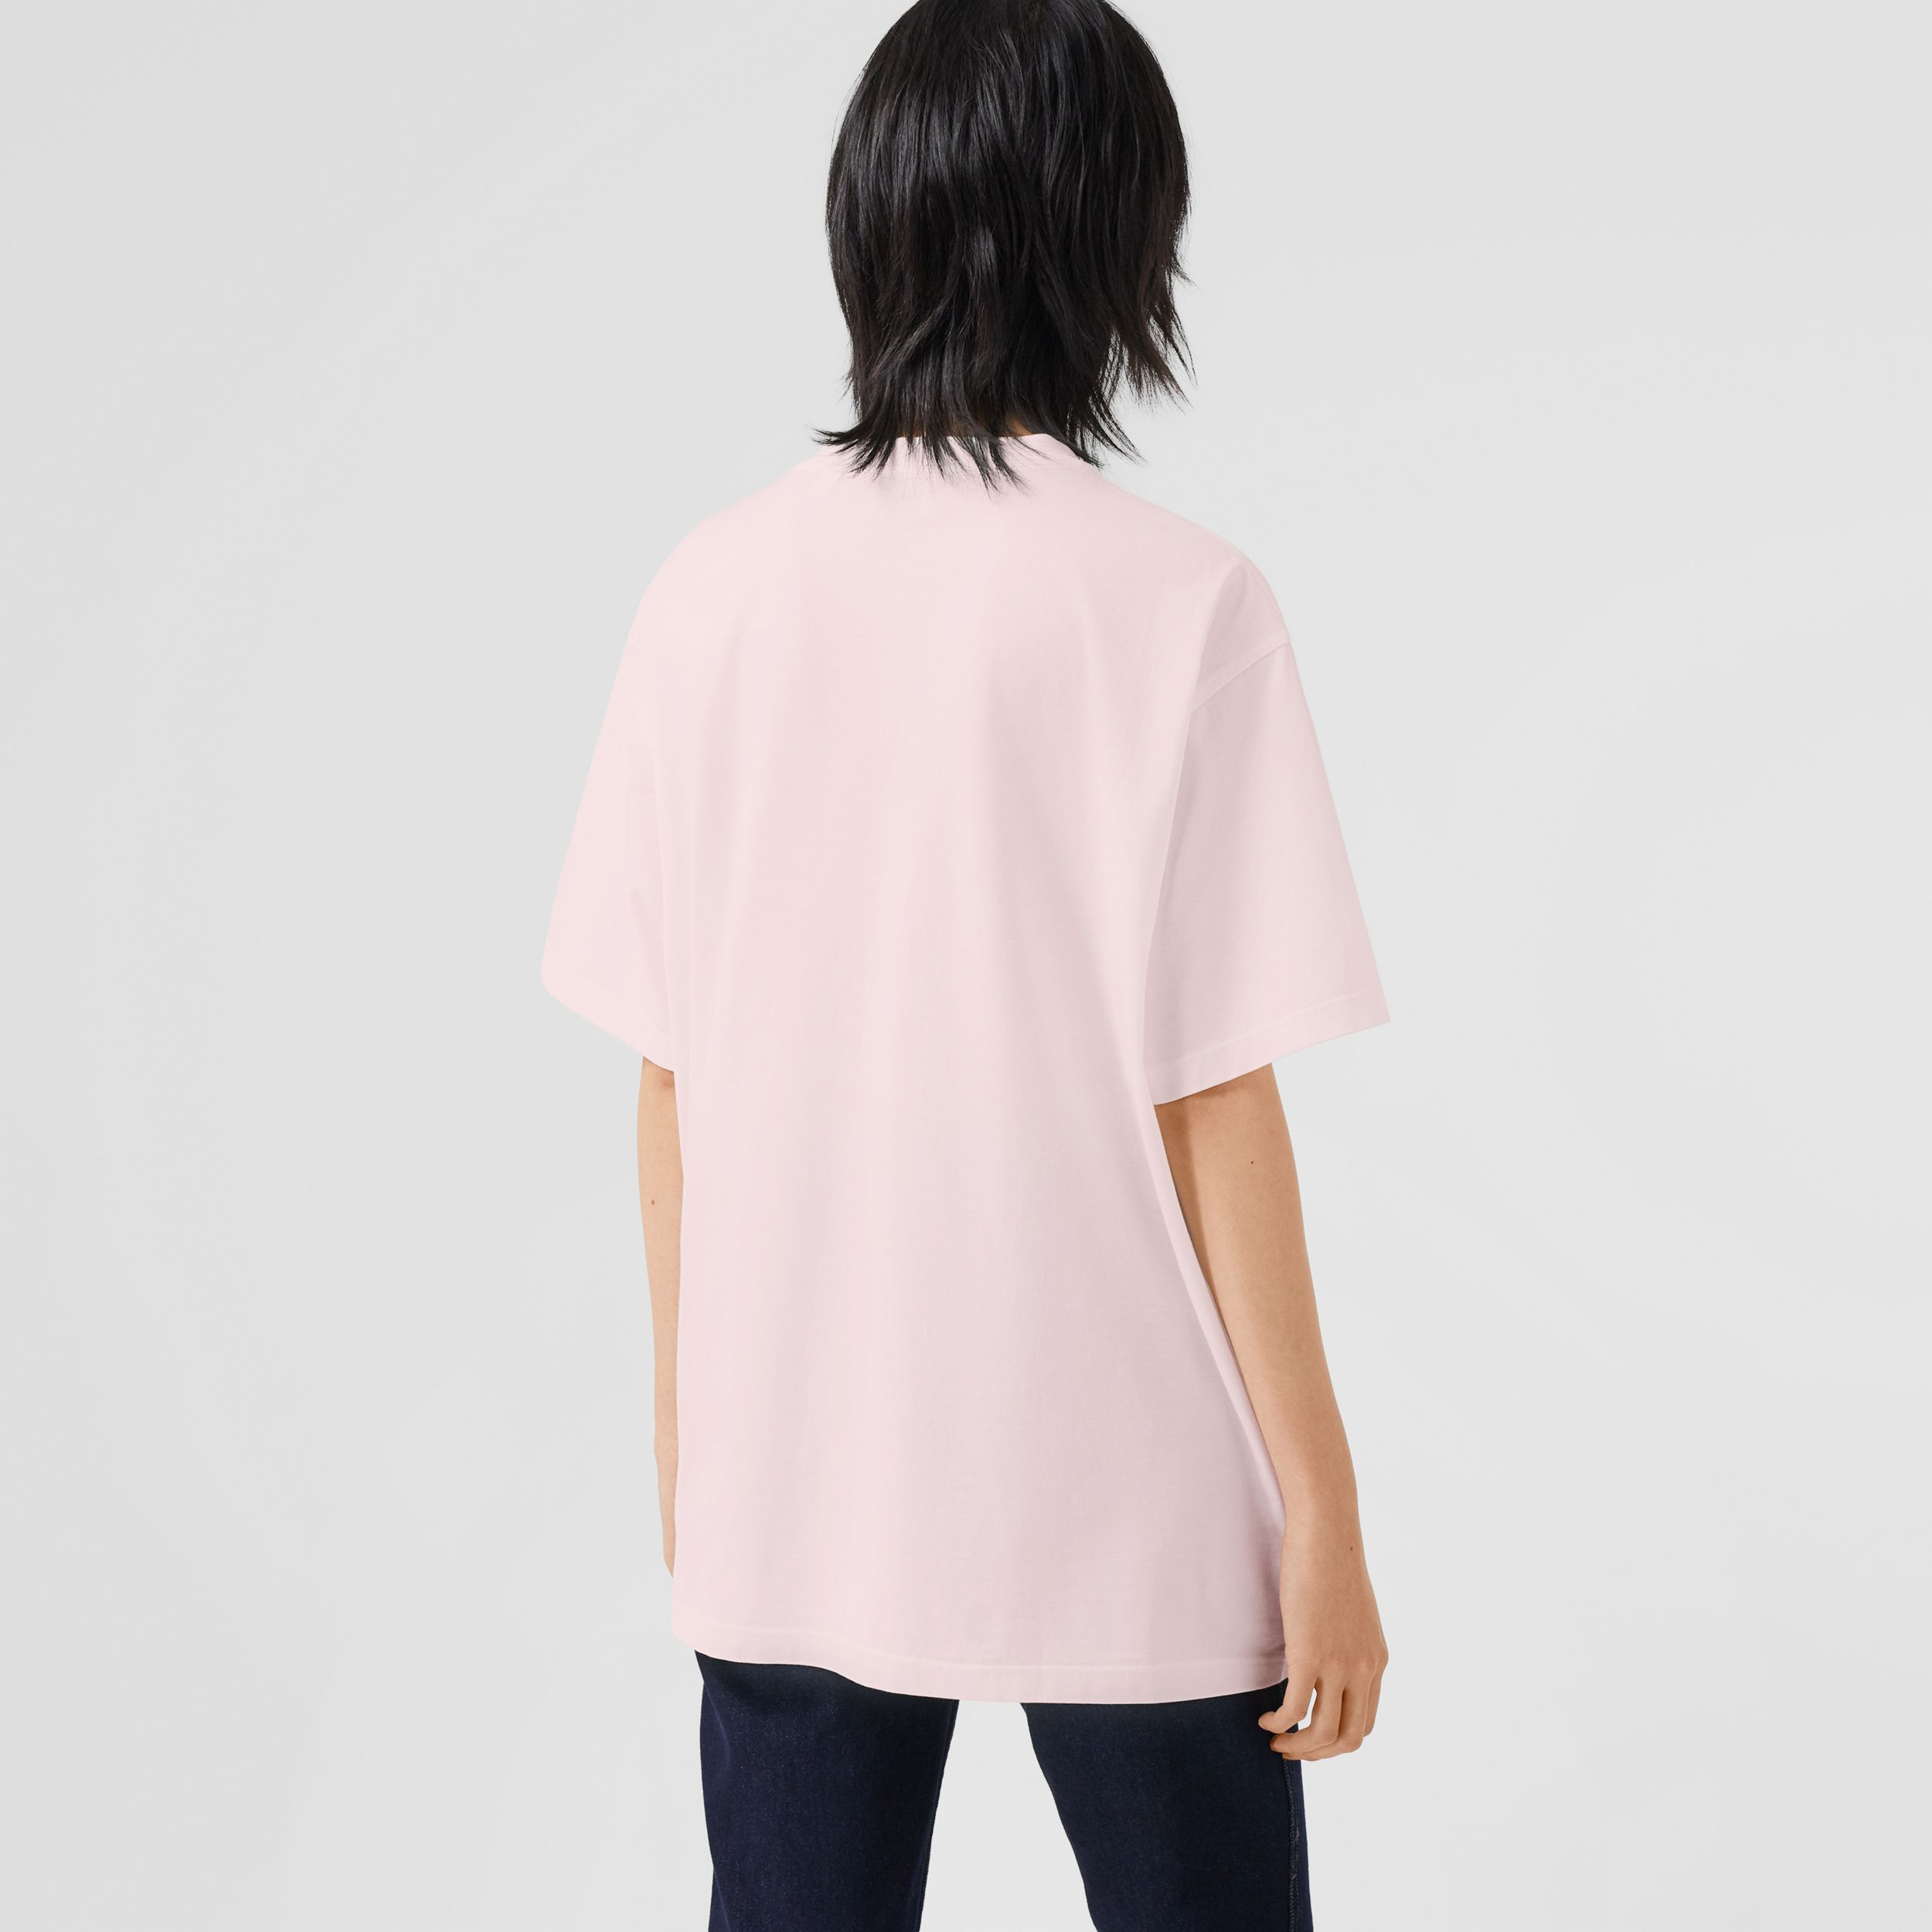 Montage Print Cotton Oversized T-shirt in Alabaster Pink - Women | Burberry Canada - 3